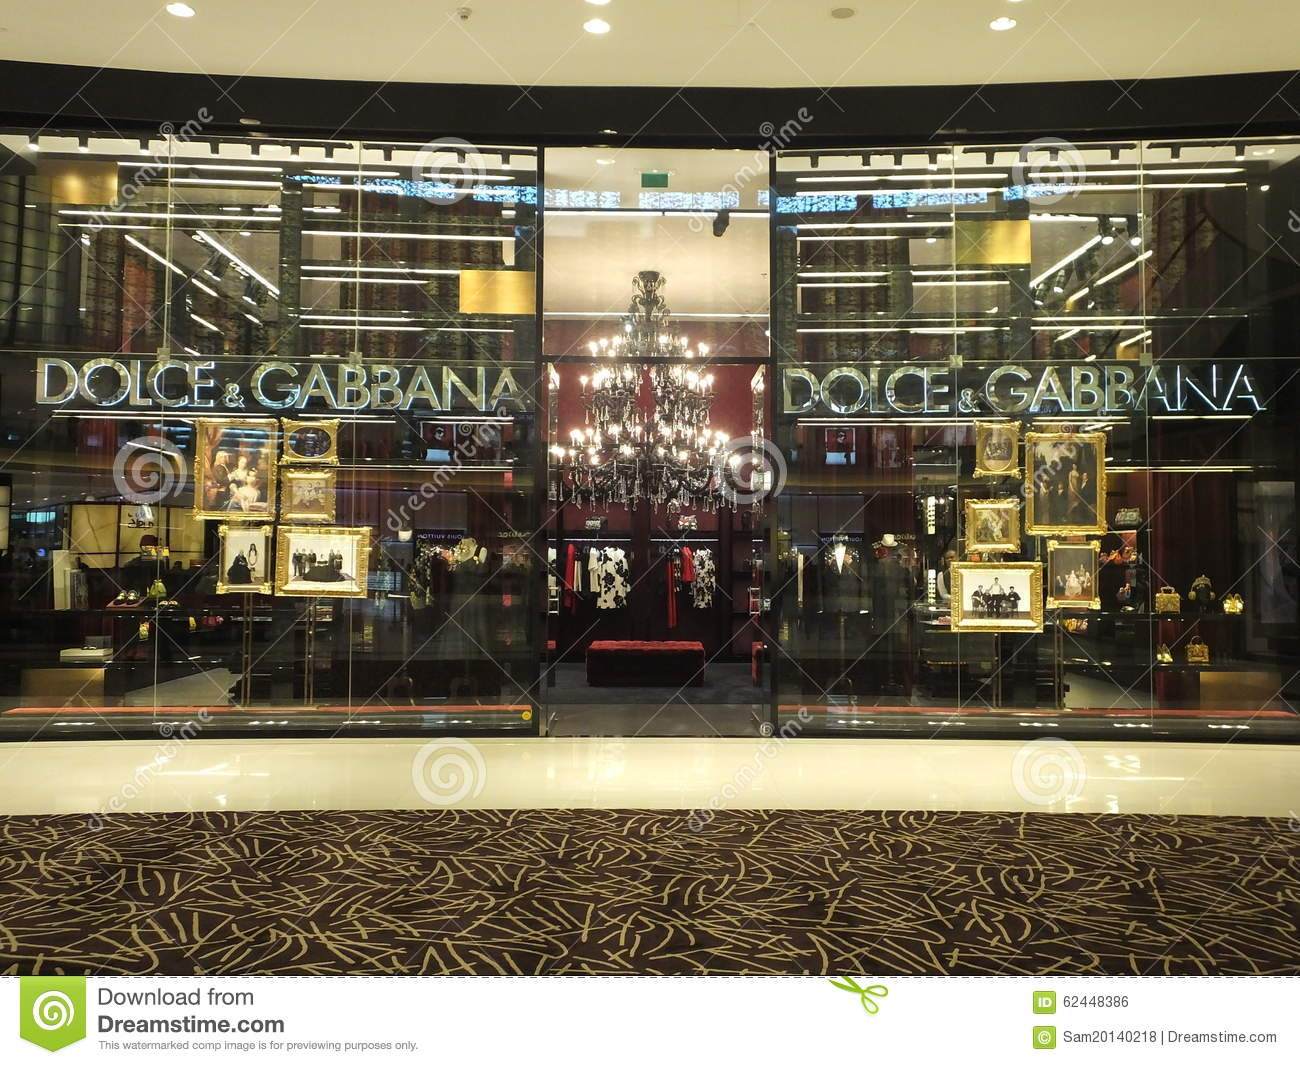 c696c2348dec Dolce & Gabbana fashion boutique display window with mannequin in luxury  clothes and accessories. Founded in 1985 by Italian designers Domenico Dolce  and ...